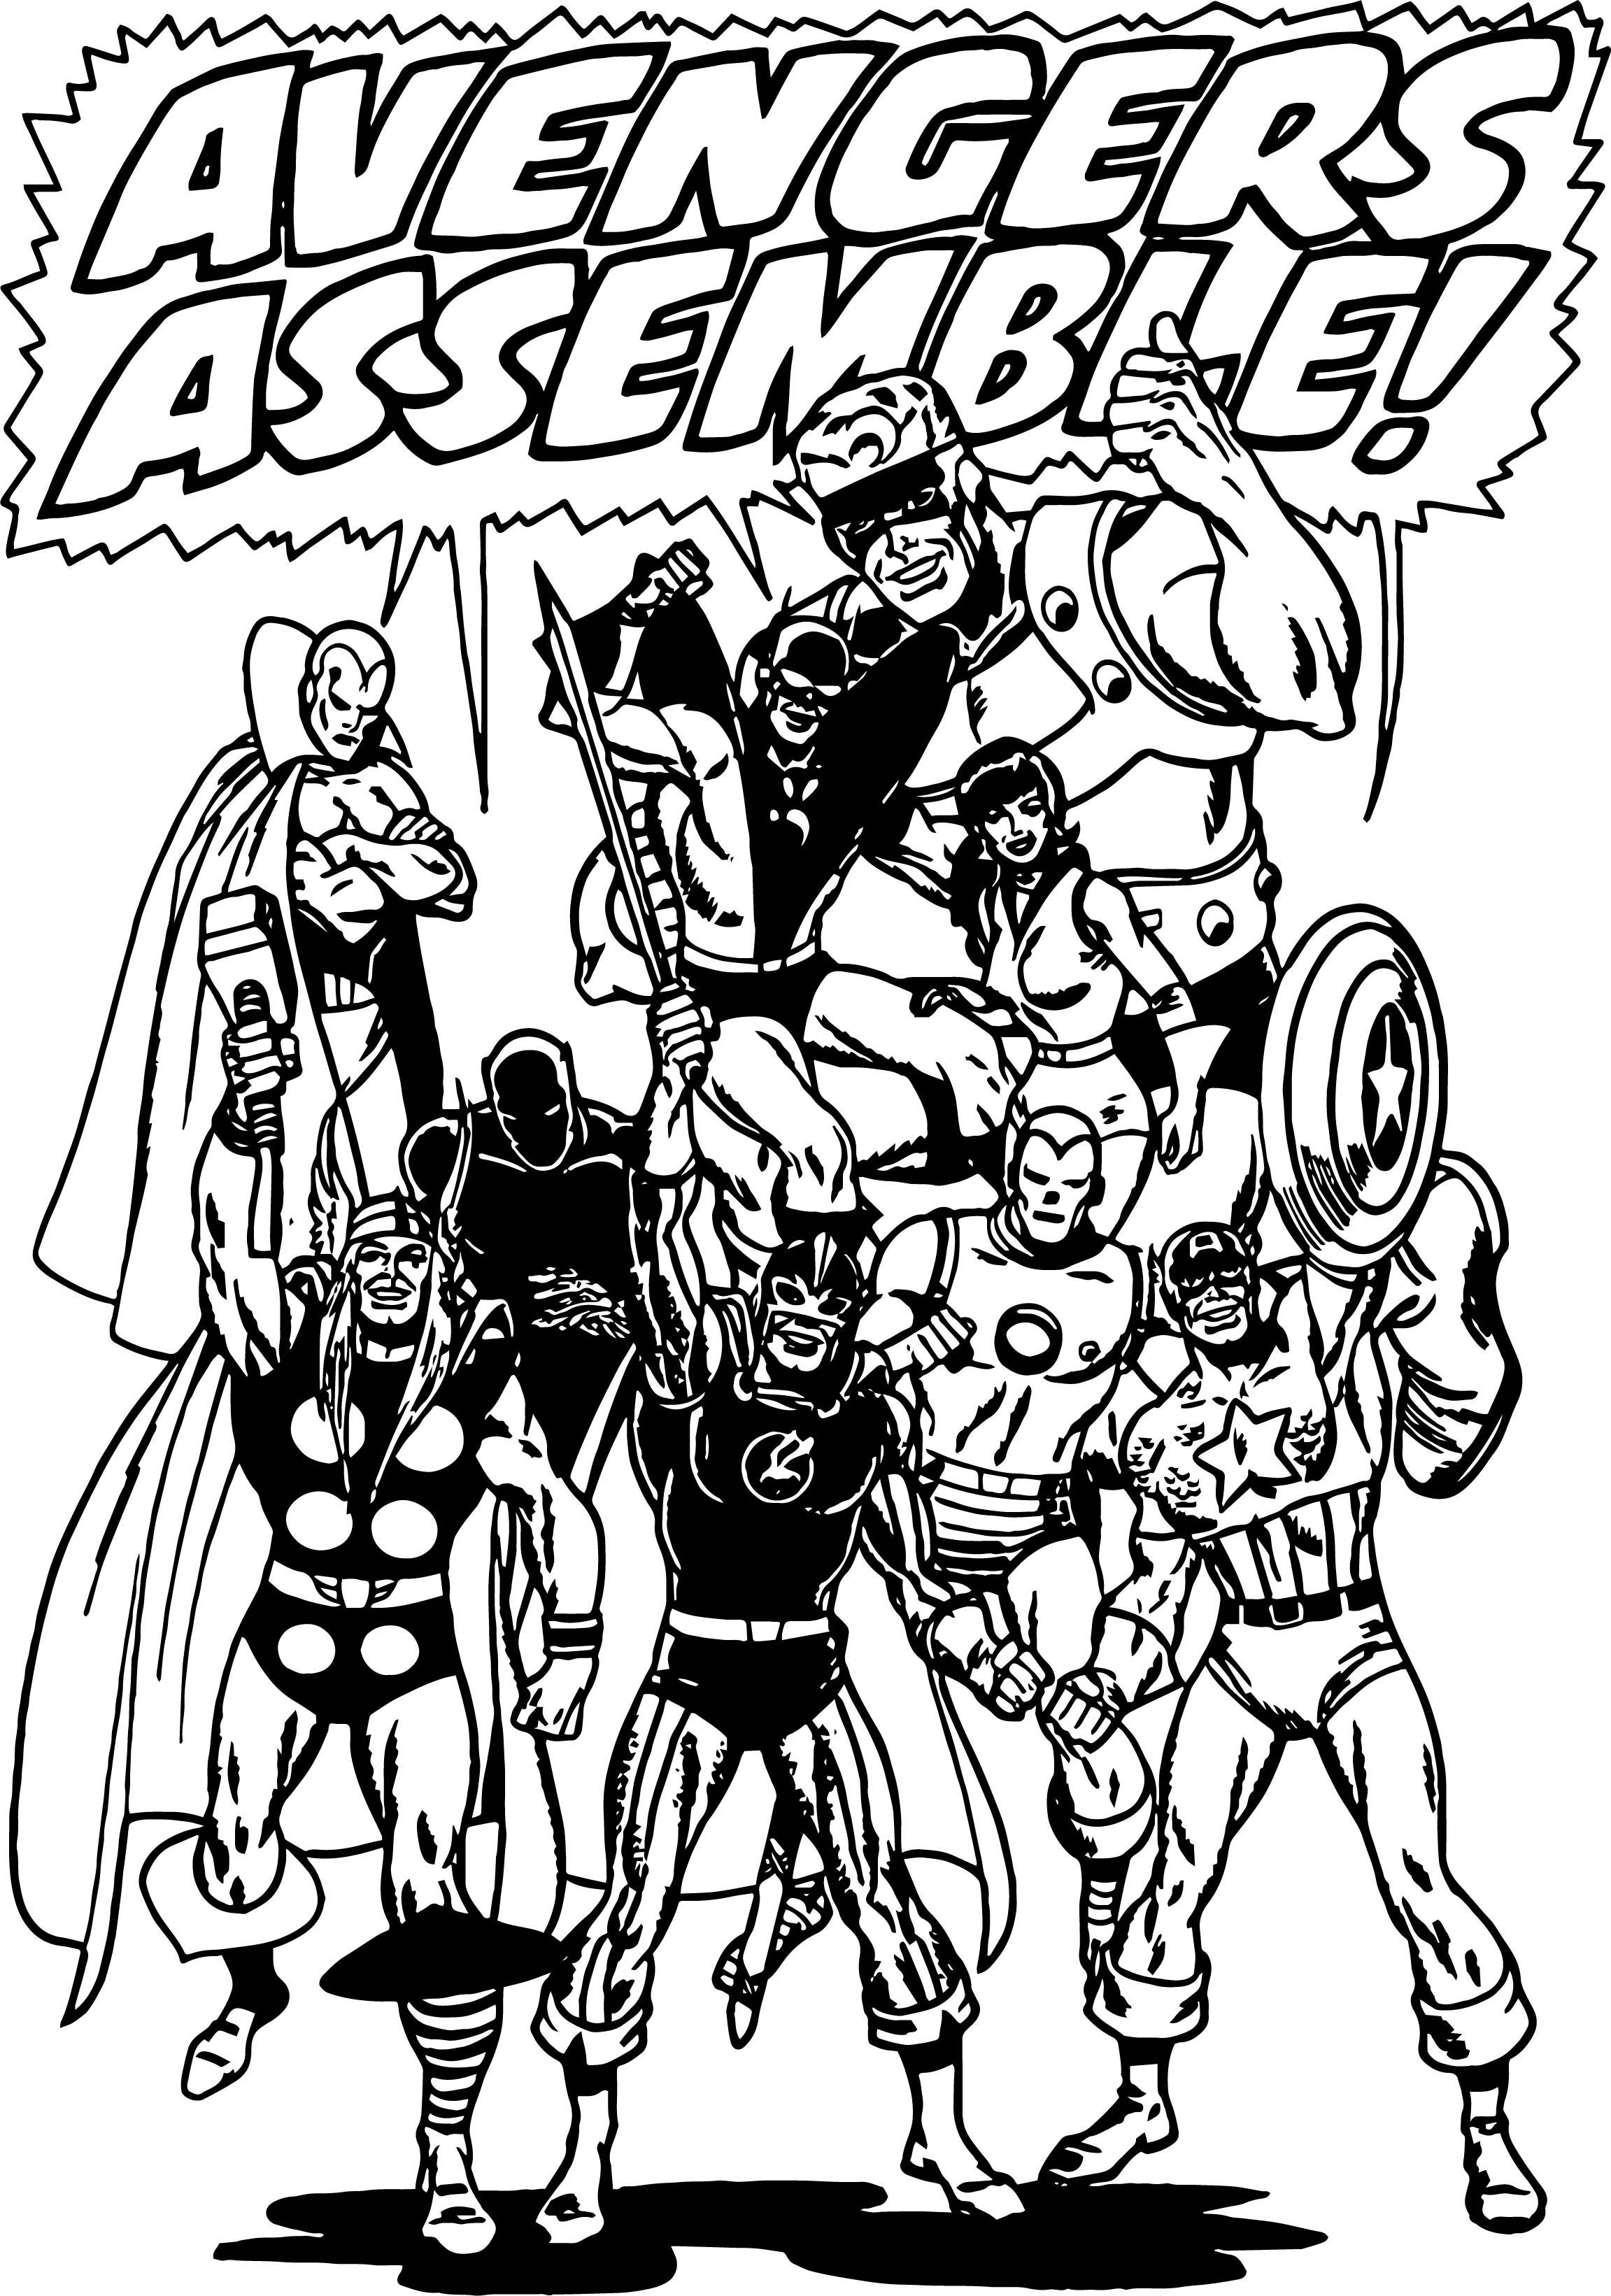 awesome Avengers Assemble Coloring Page  Avengers coloring pages, Avengers coloring, Coloring pages